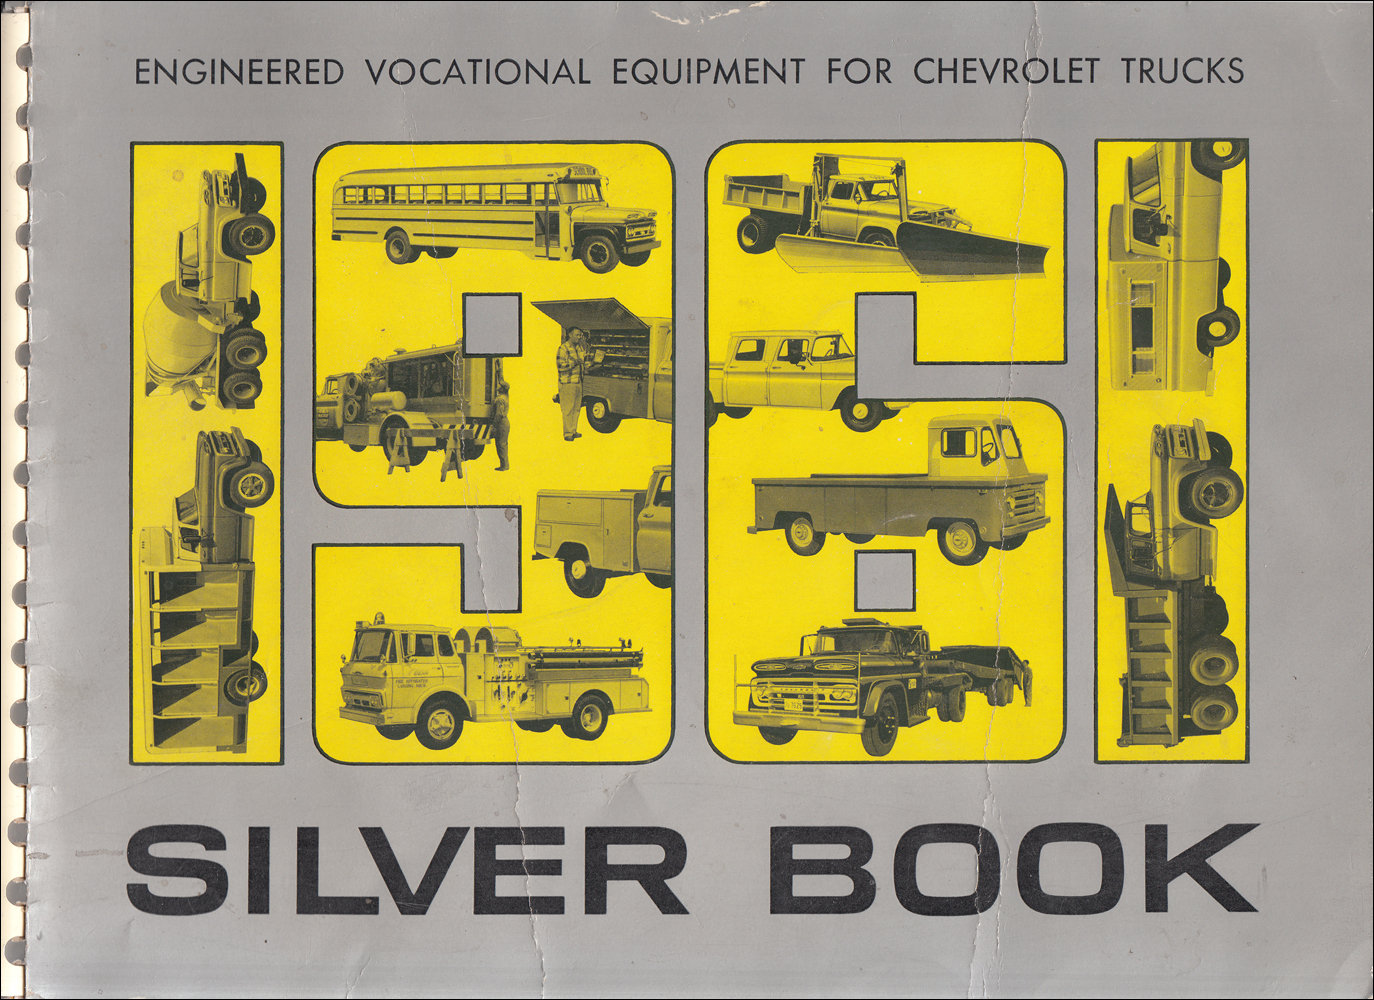 1961 Chevrolet Truck Silver Book Special Equipment Dealer Album